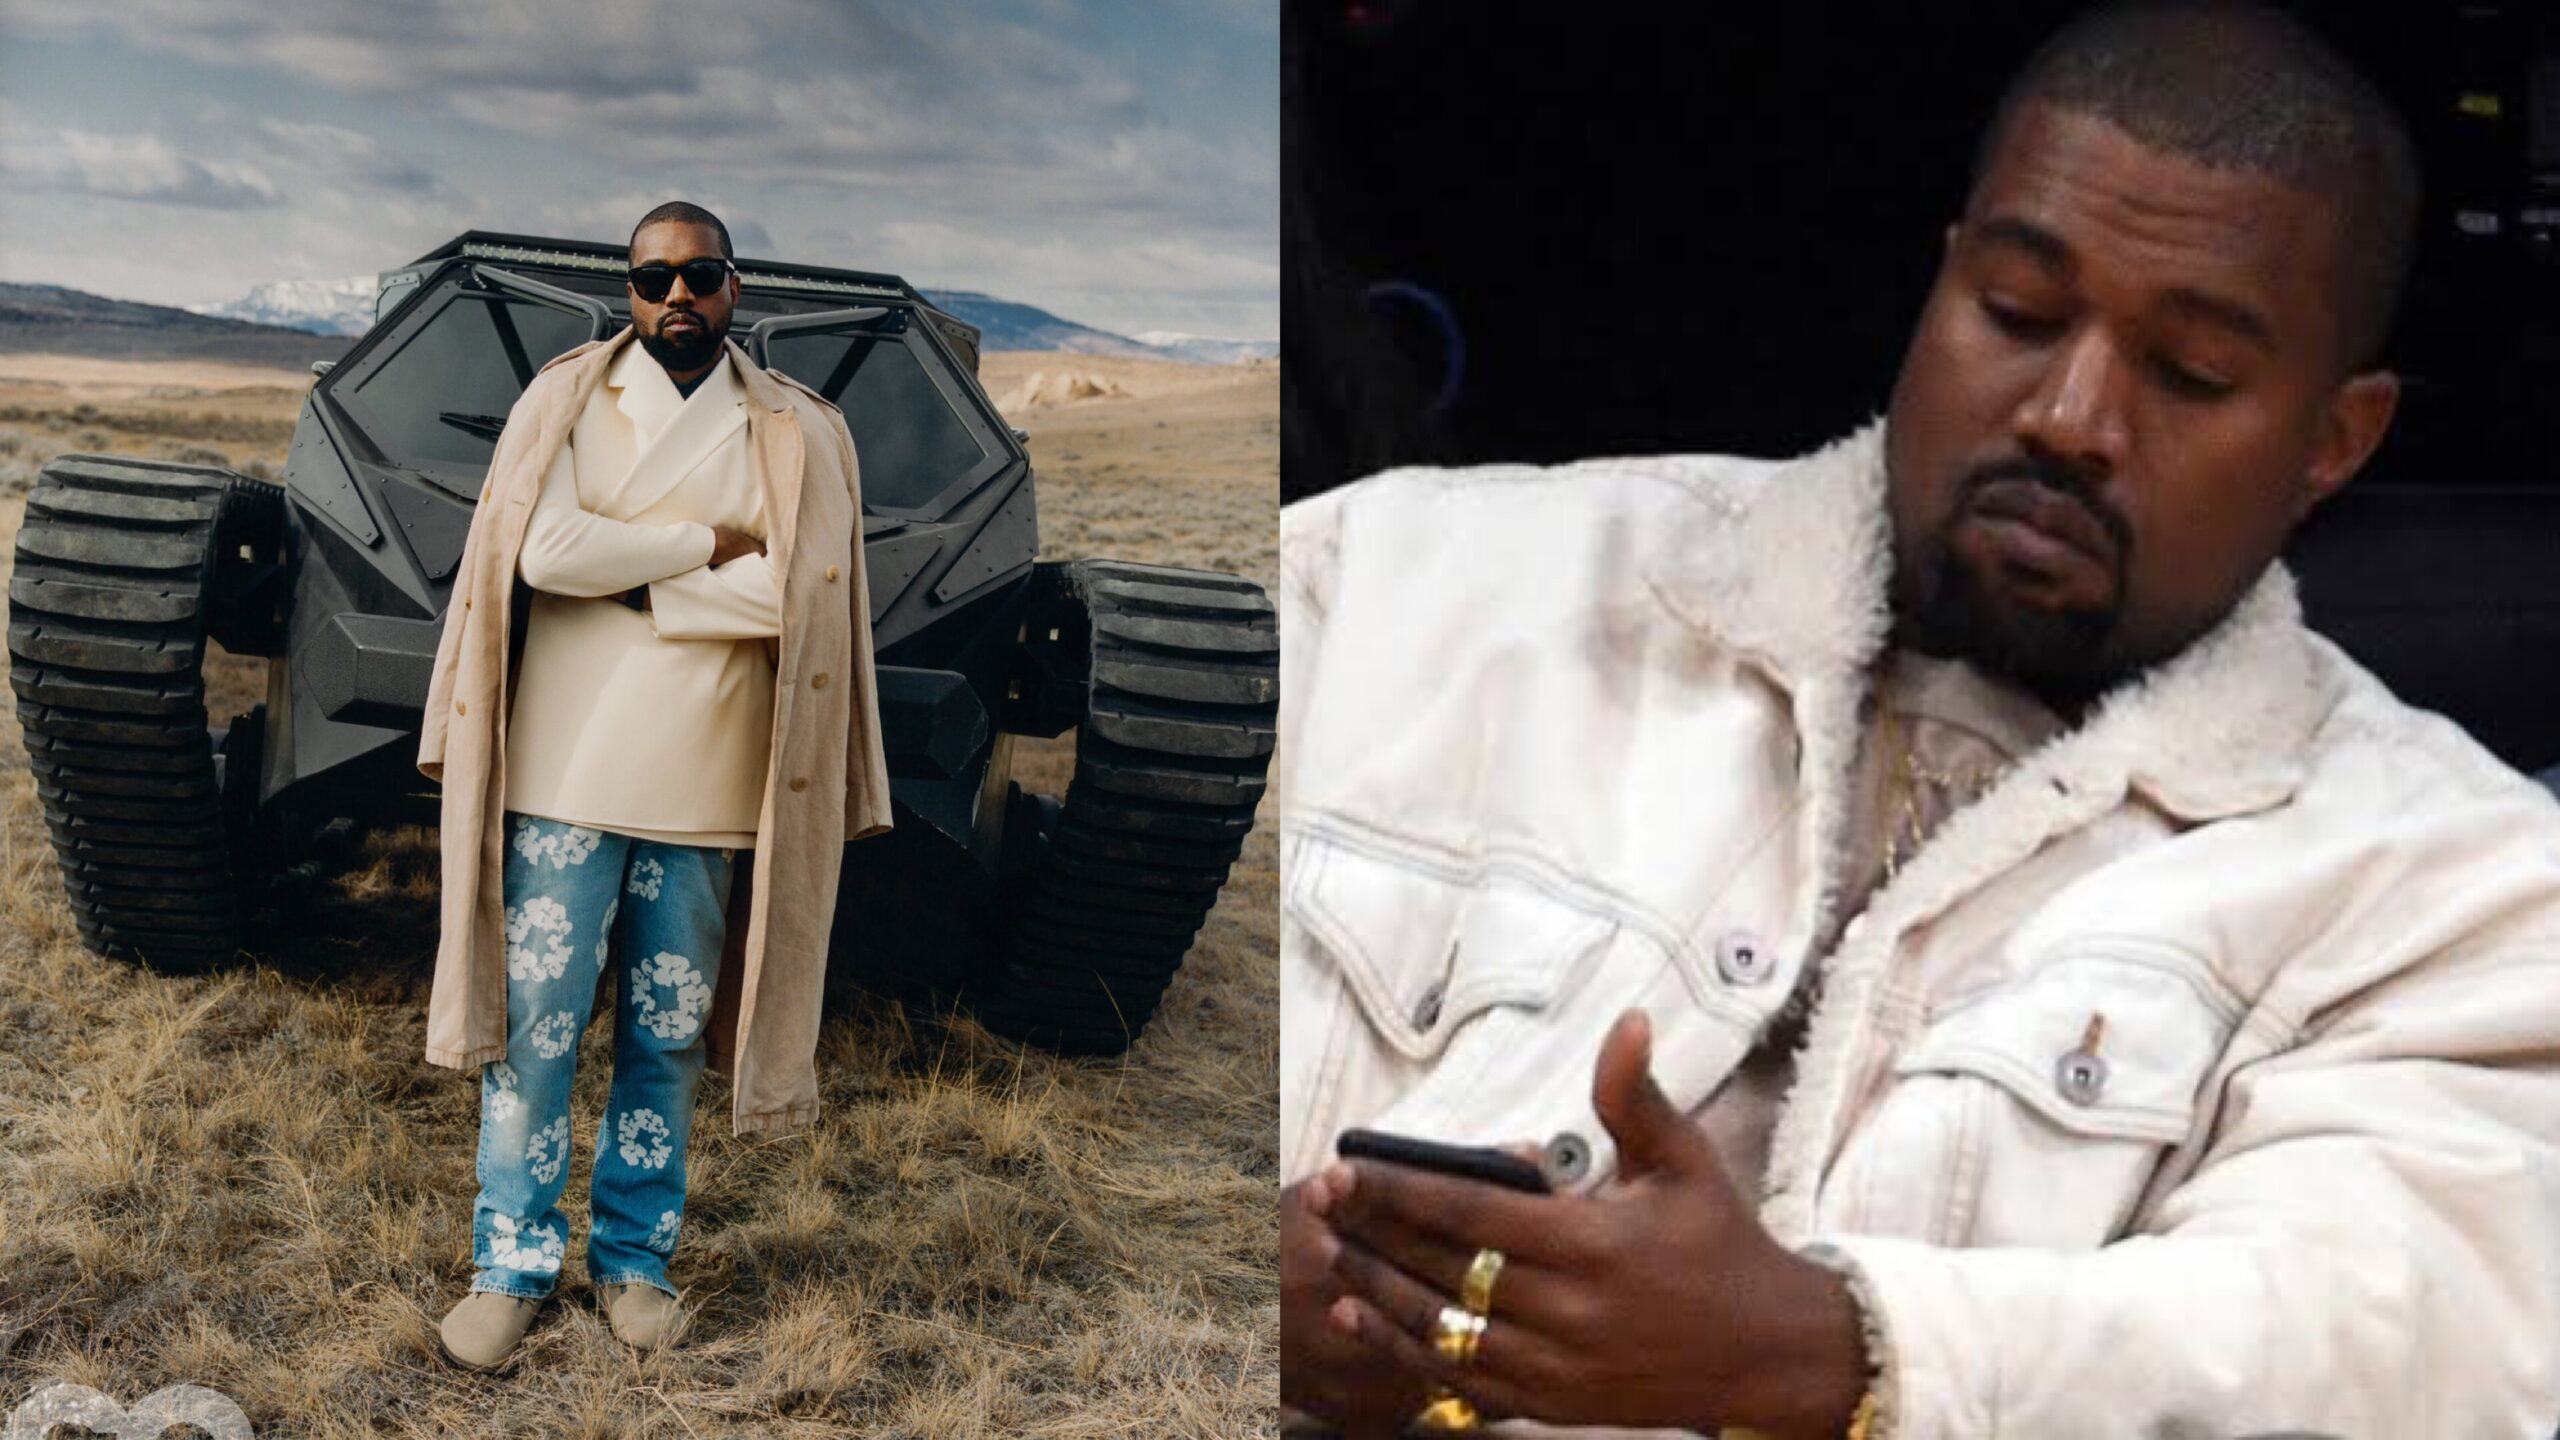 Forbes says Kanye West is now a billionaire with $1.2billion -Ye slams them to do the maths well as he claims $3.3billion